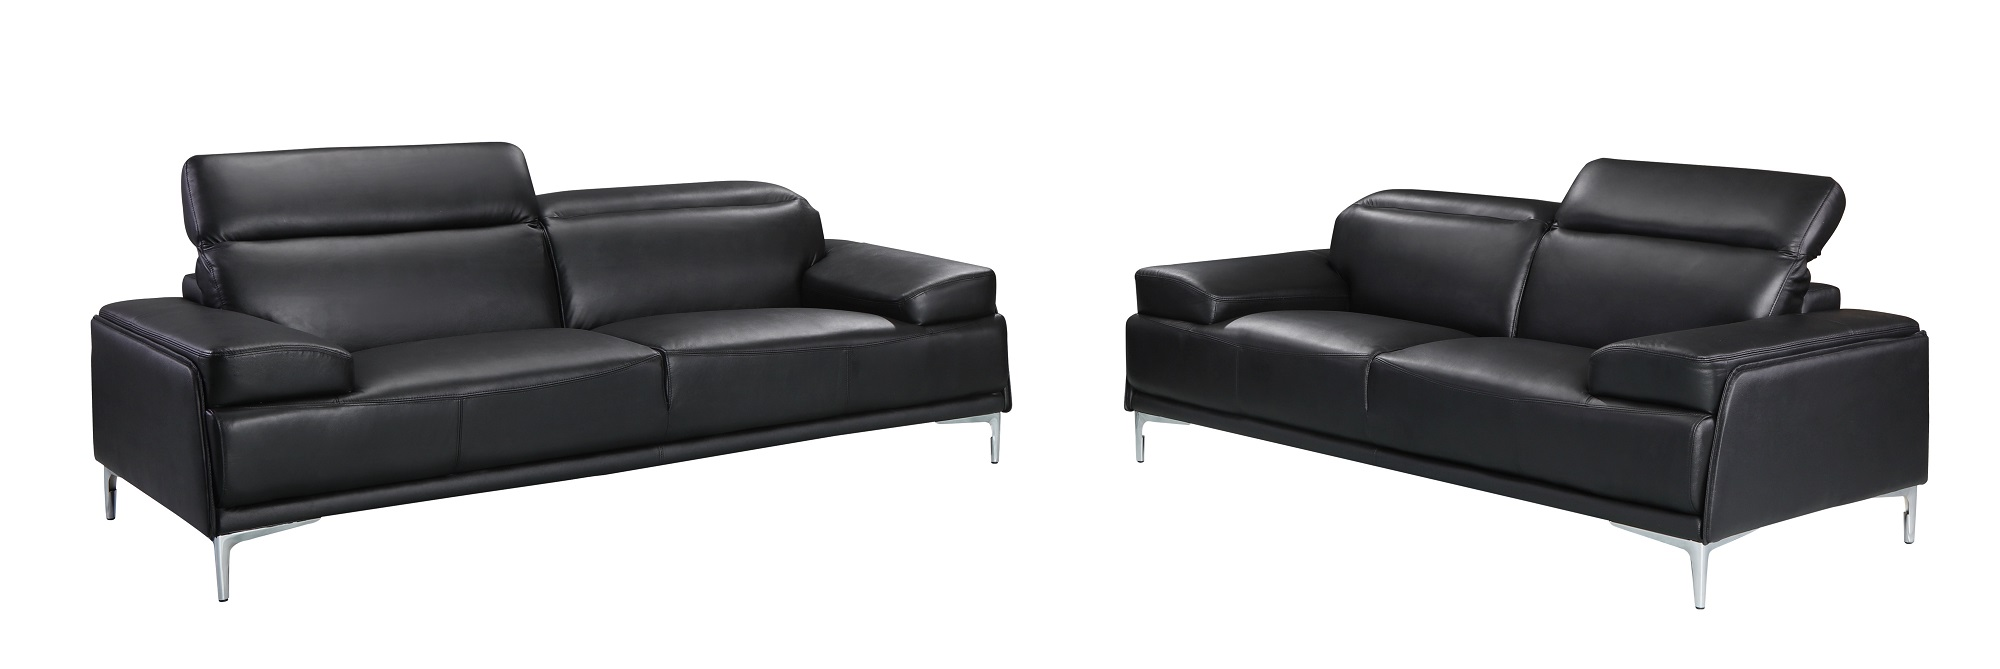 Wondrous Nicolo Black Sofa Set Forskolin Free Trial Chair Design Images Forskolin Free Trialorg